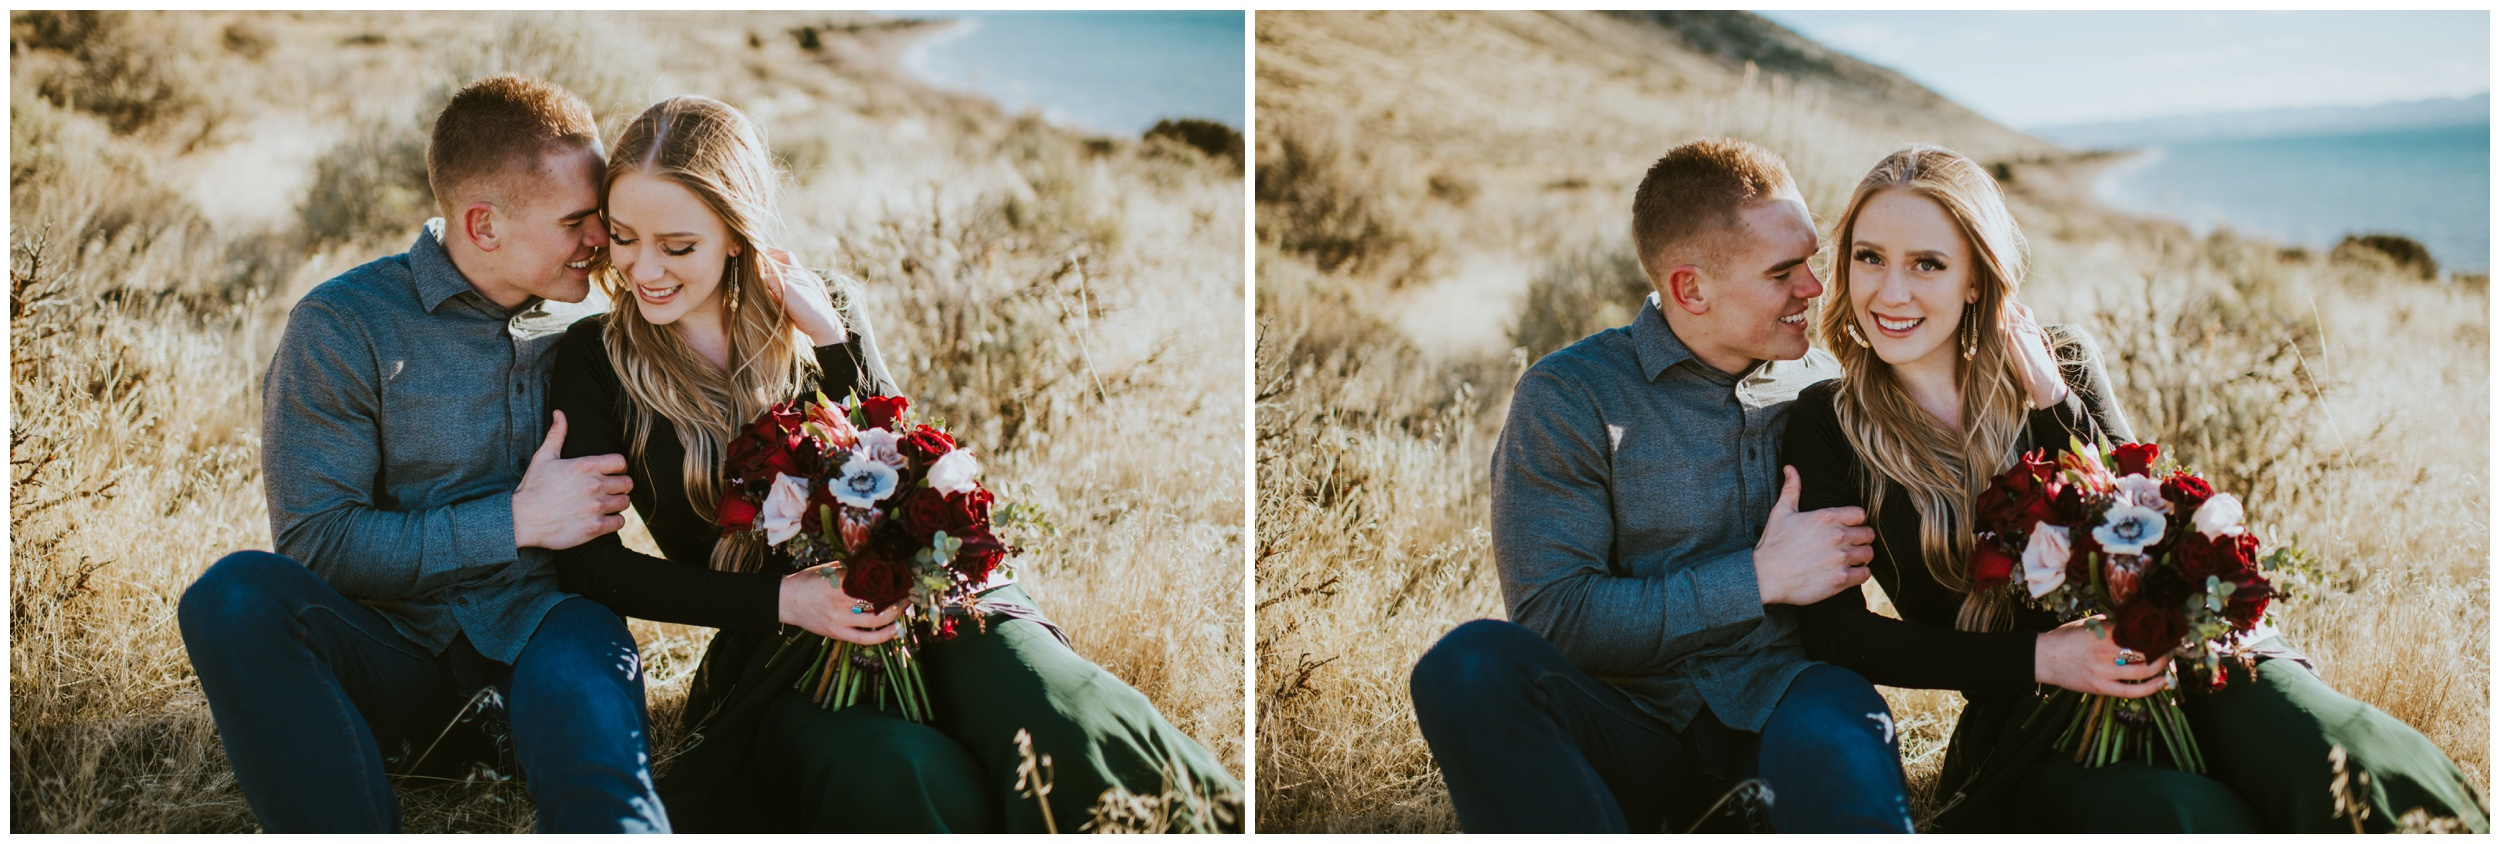 Couple sitting in a field cuddling and smiling  | Wedding Photographer Bear Lake Utah www.riversandroadsphotography.com